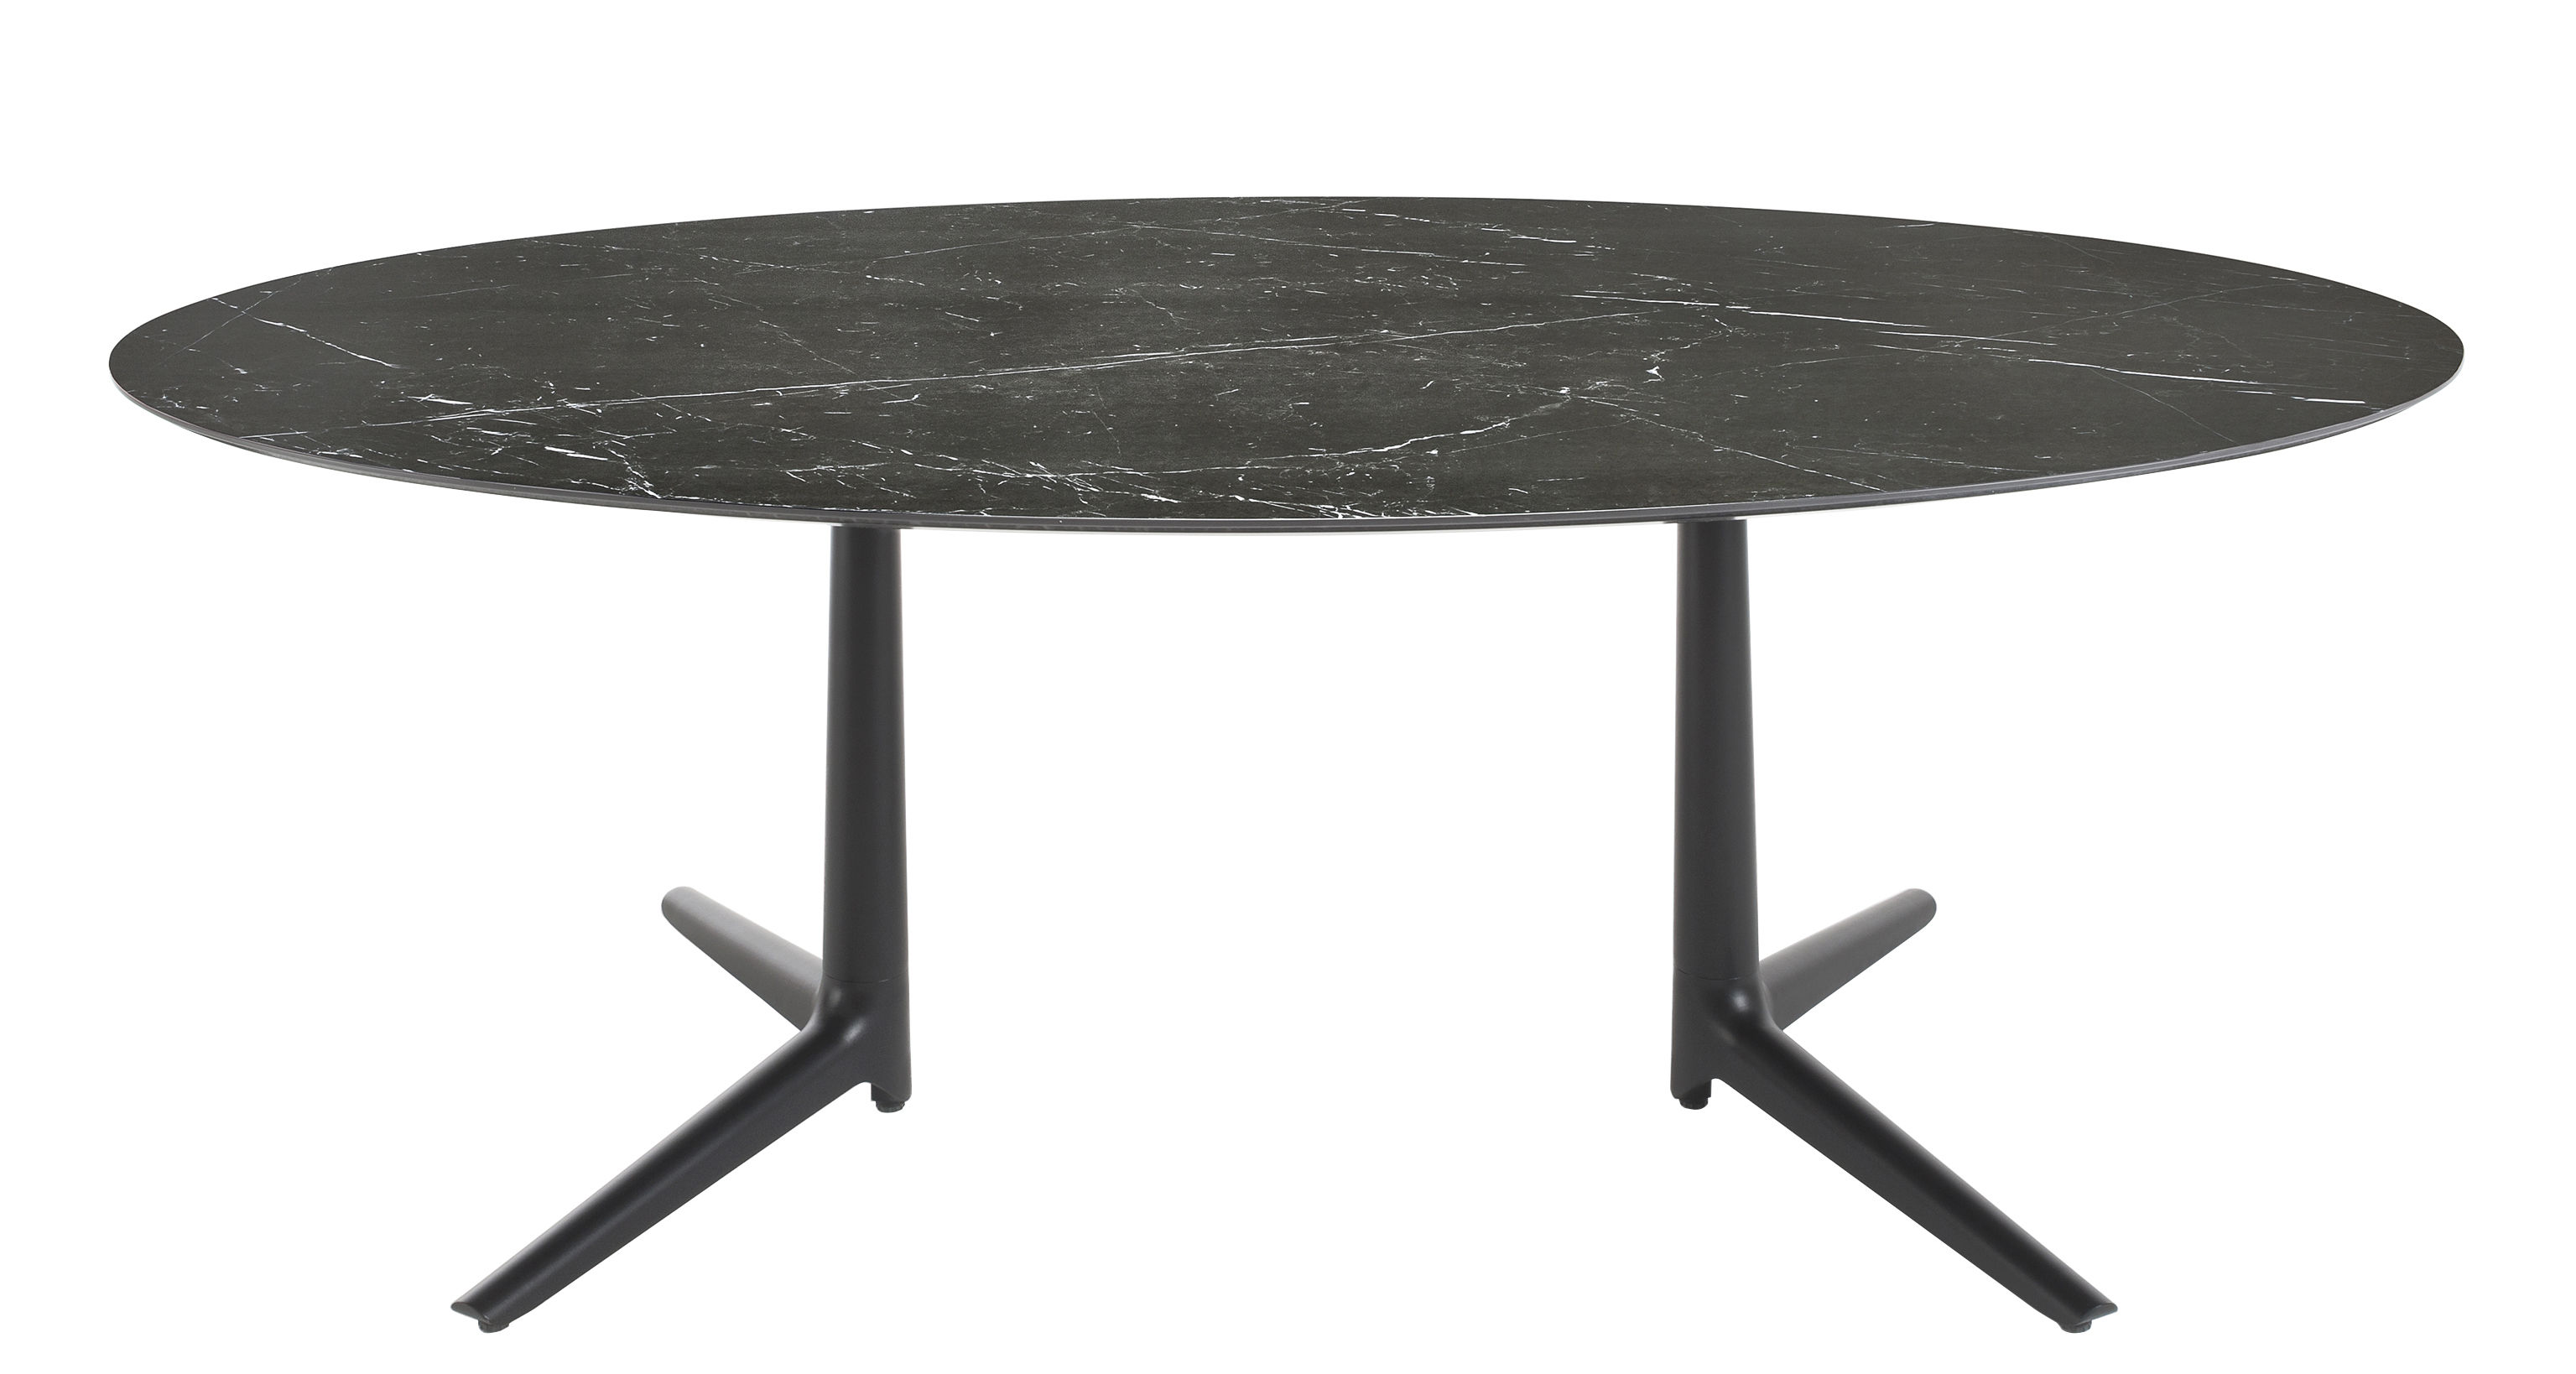 Furniture - Dining Tables - Multiplo indoor - Oval table - Ovale - 192 x 118 cm / Marble aspect by Kartell - Black / Black marble - Stoneware with marble effect, Varnished aluminium